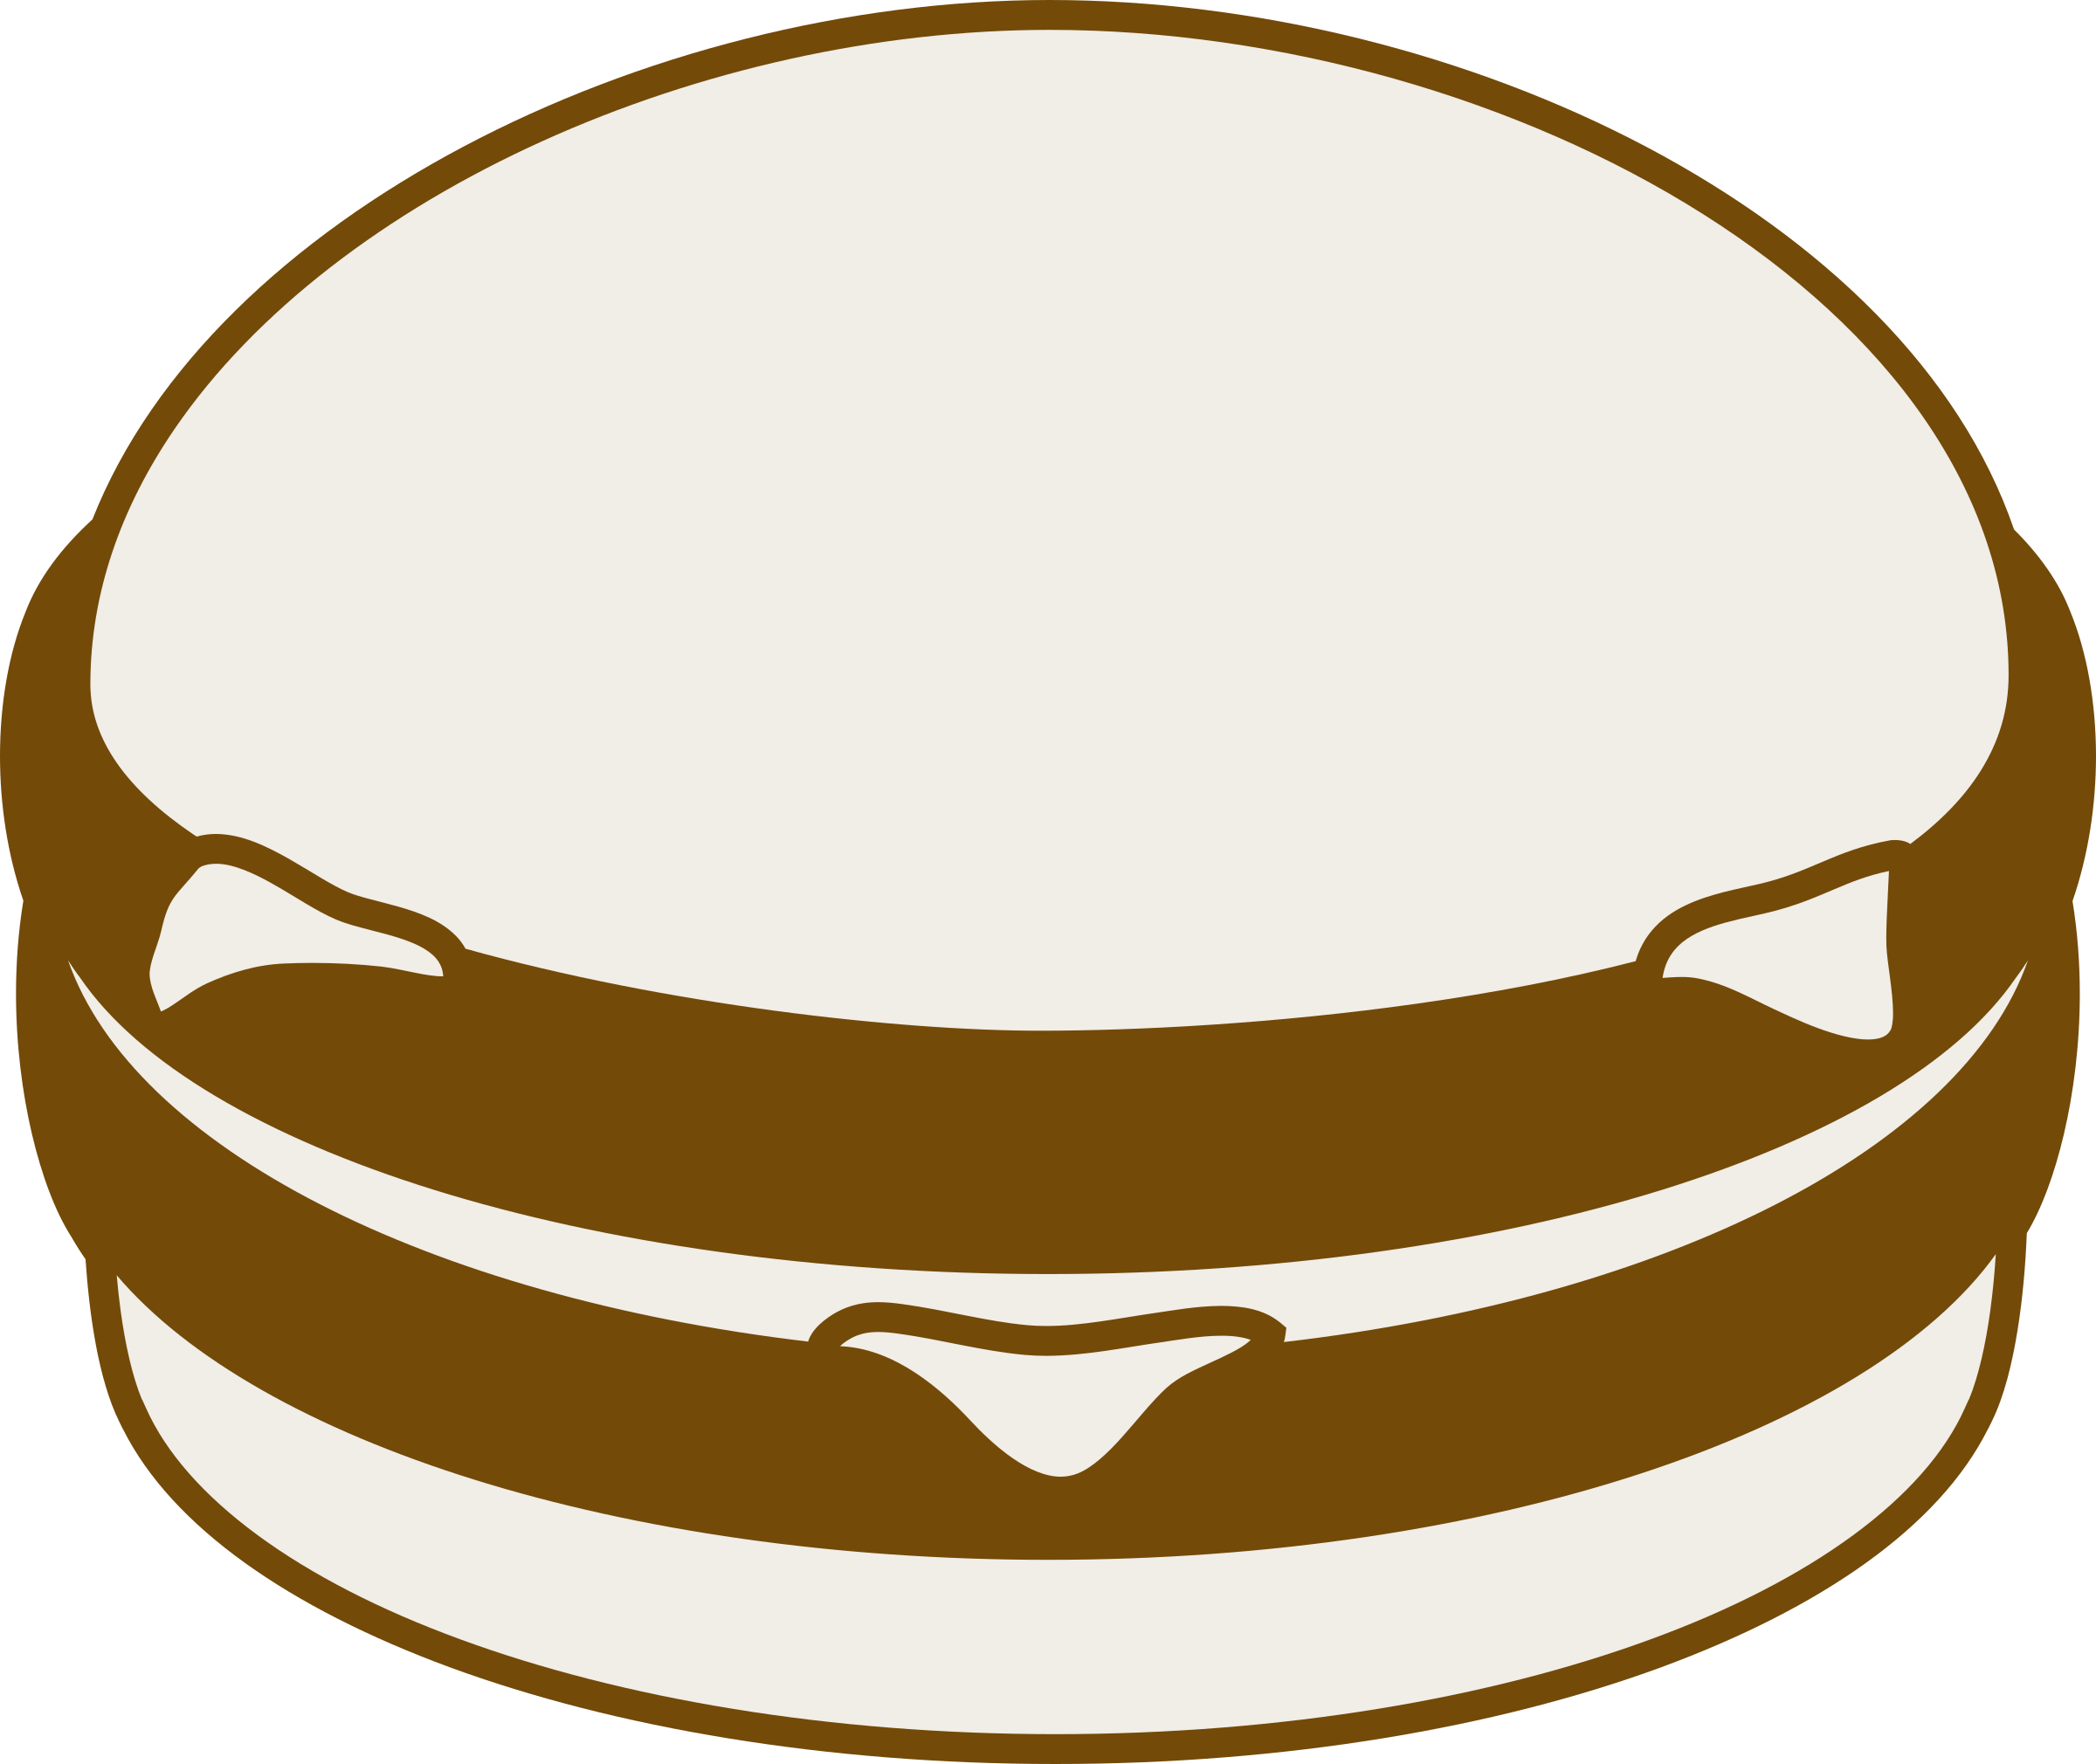 Hamburger by gramzon